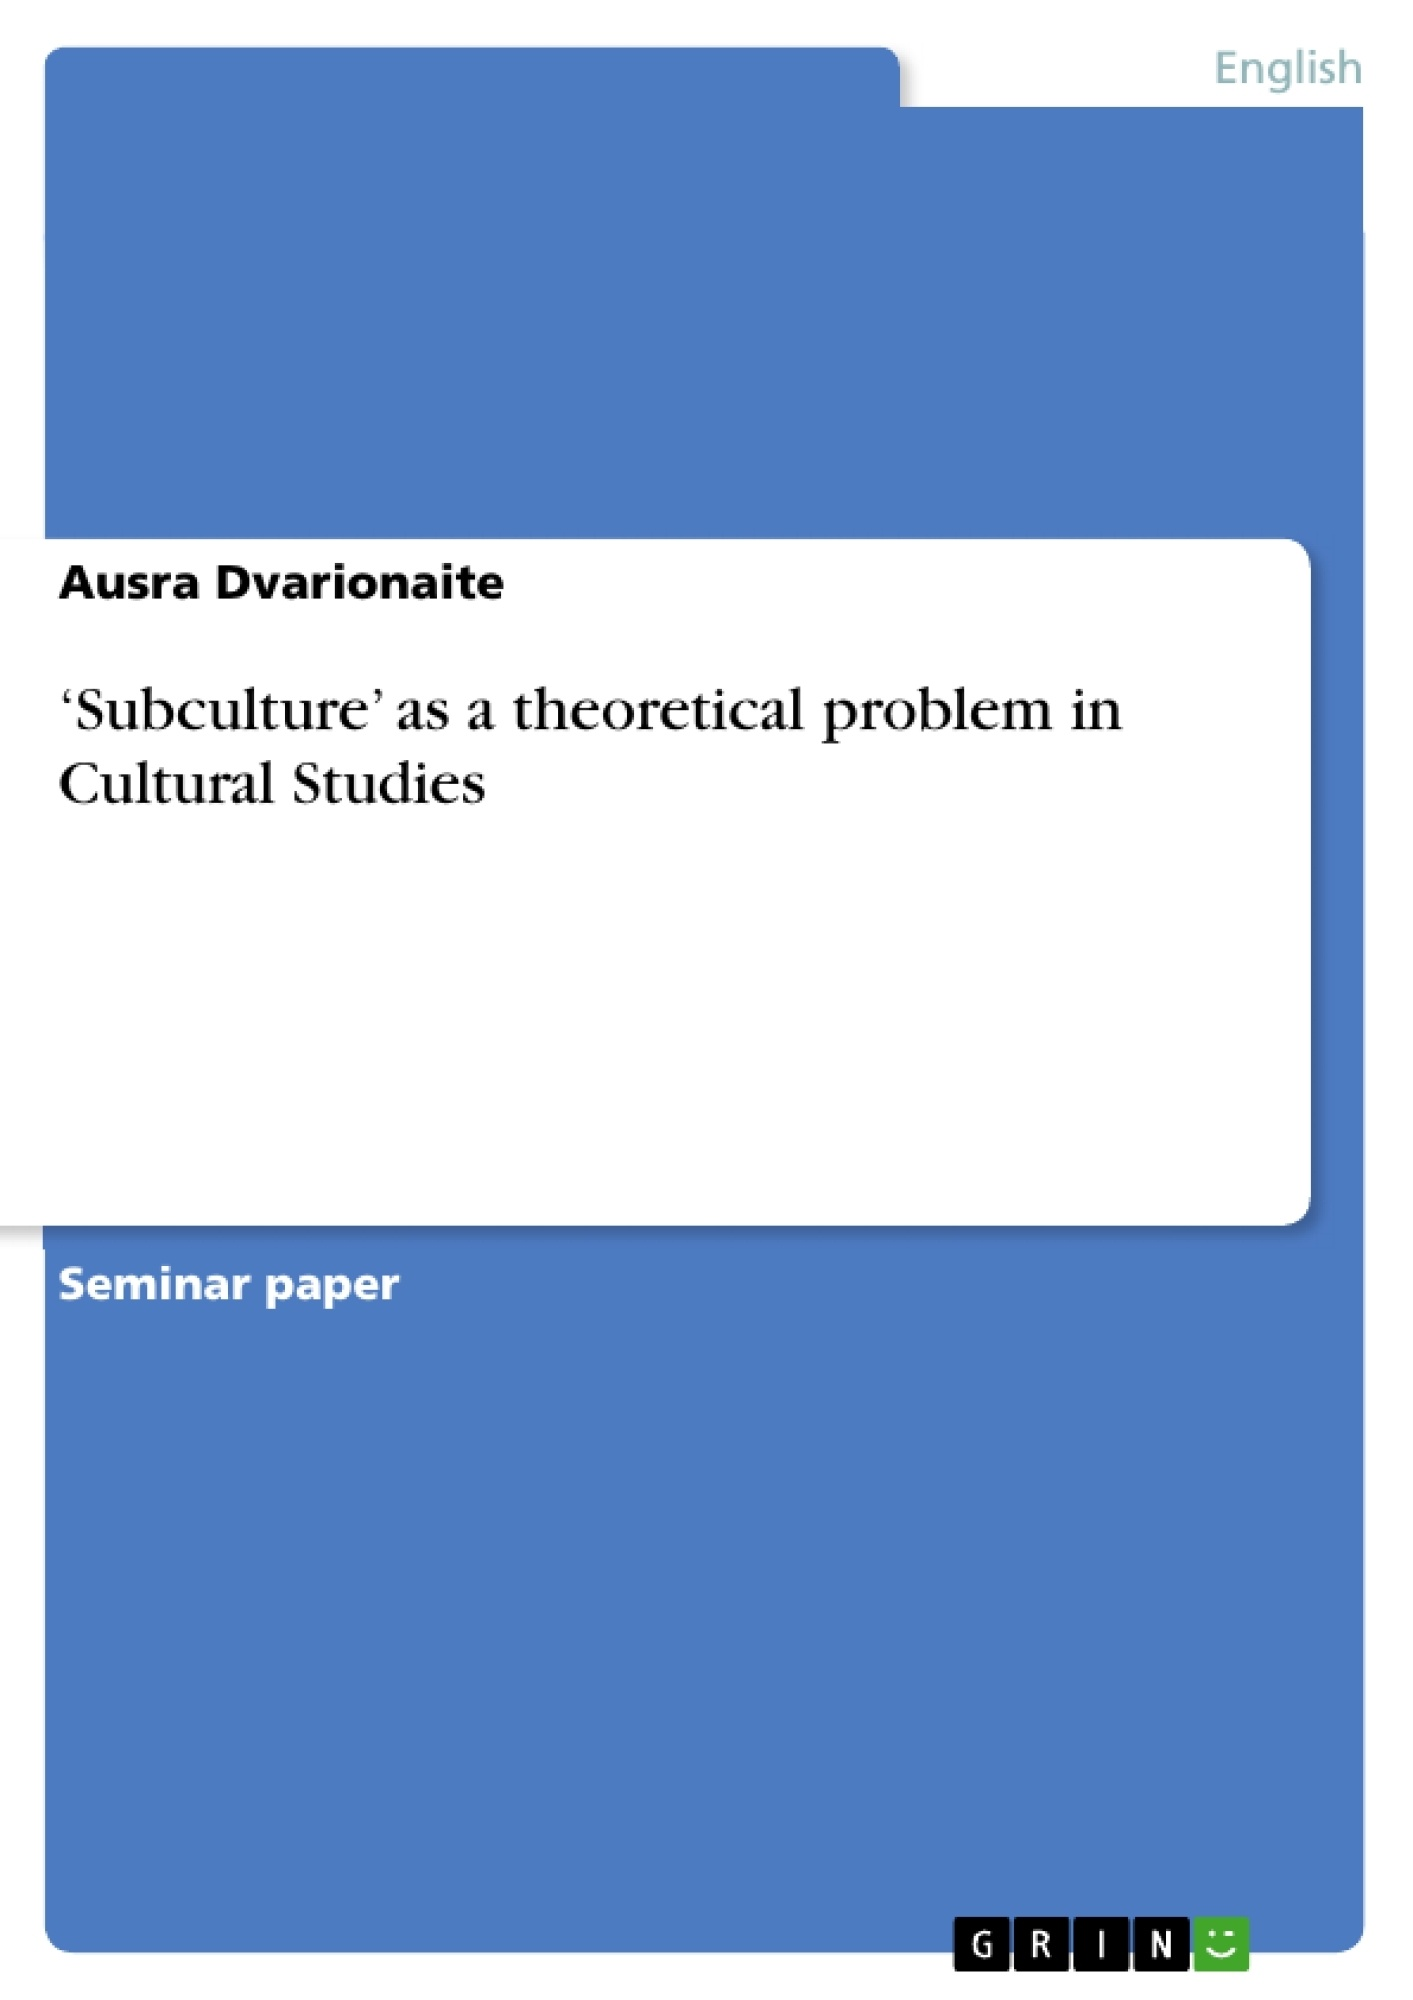 Title: 'Subculture' as a theoretical problem in Cultural Studies